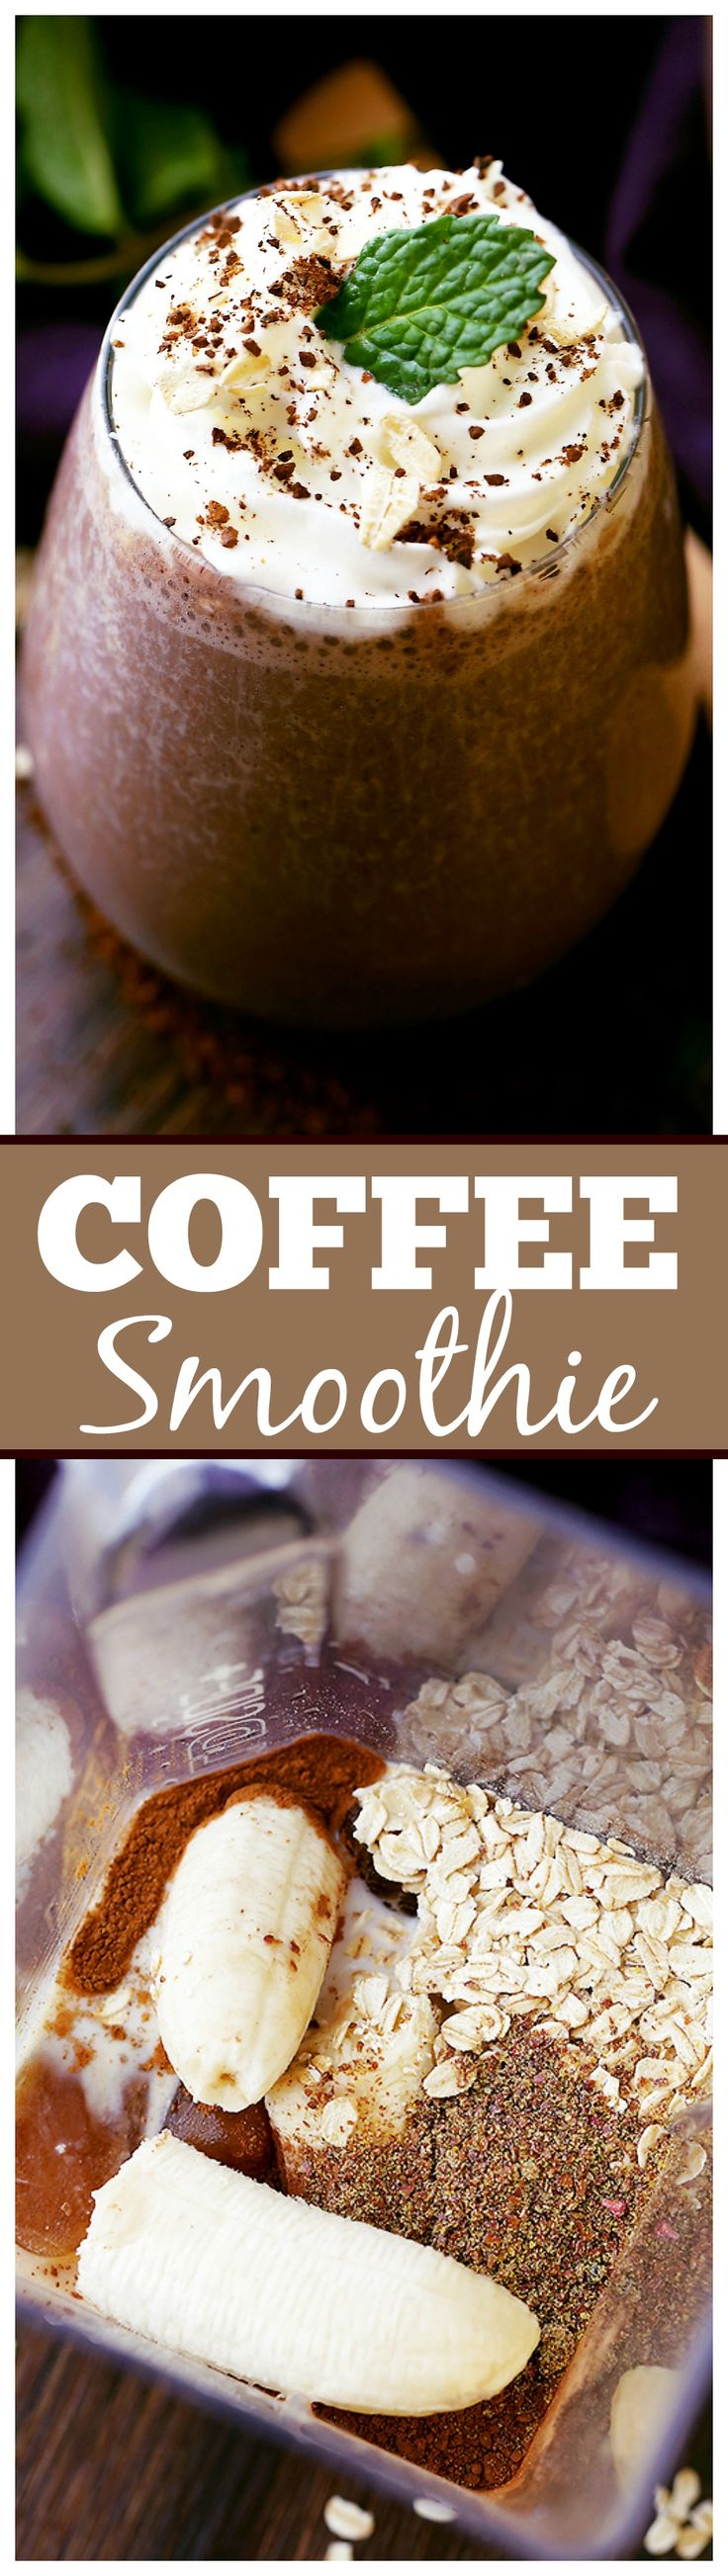 Yes Please!!! Coffee Smoothie #energy